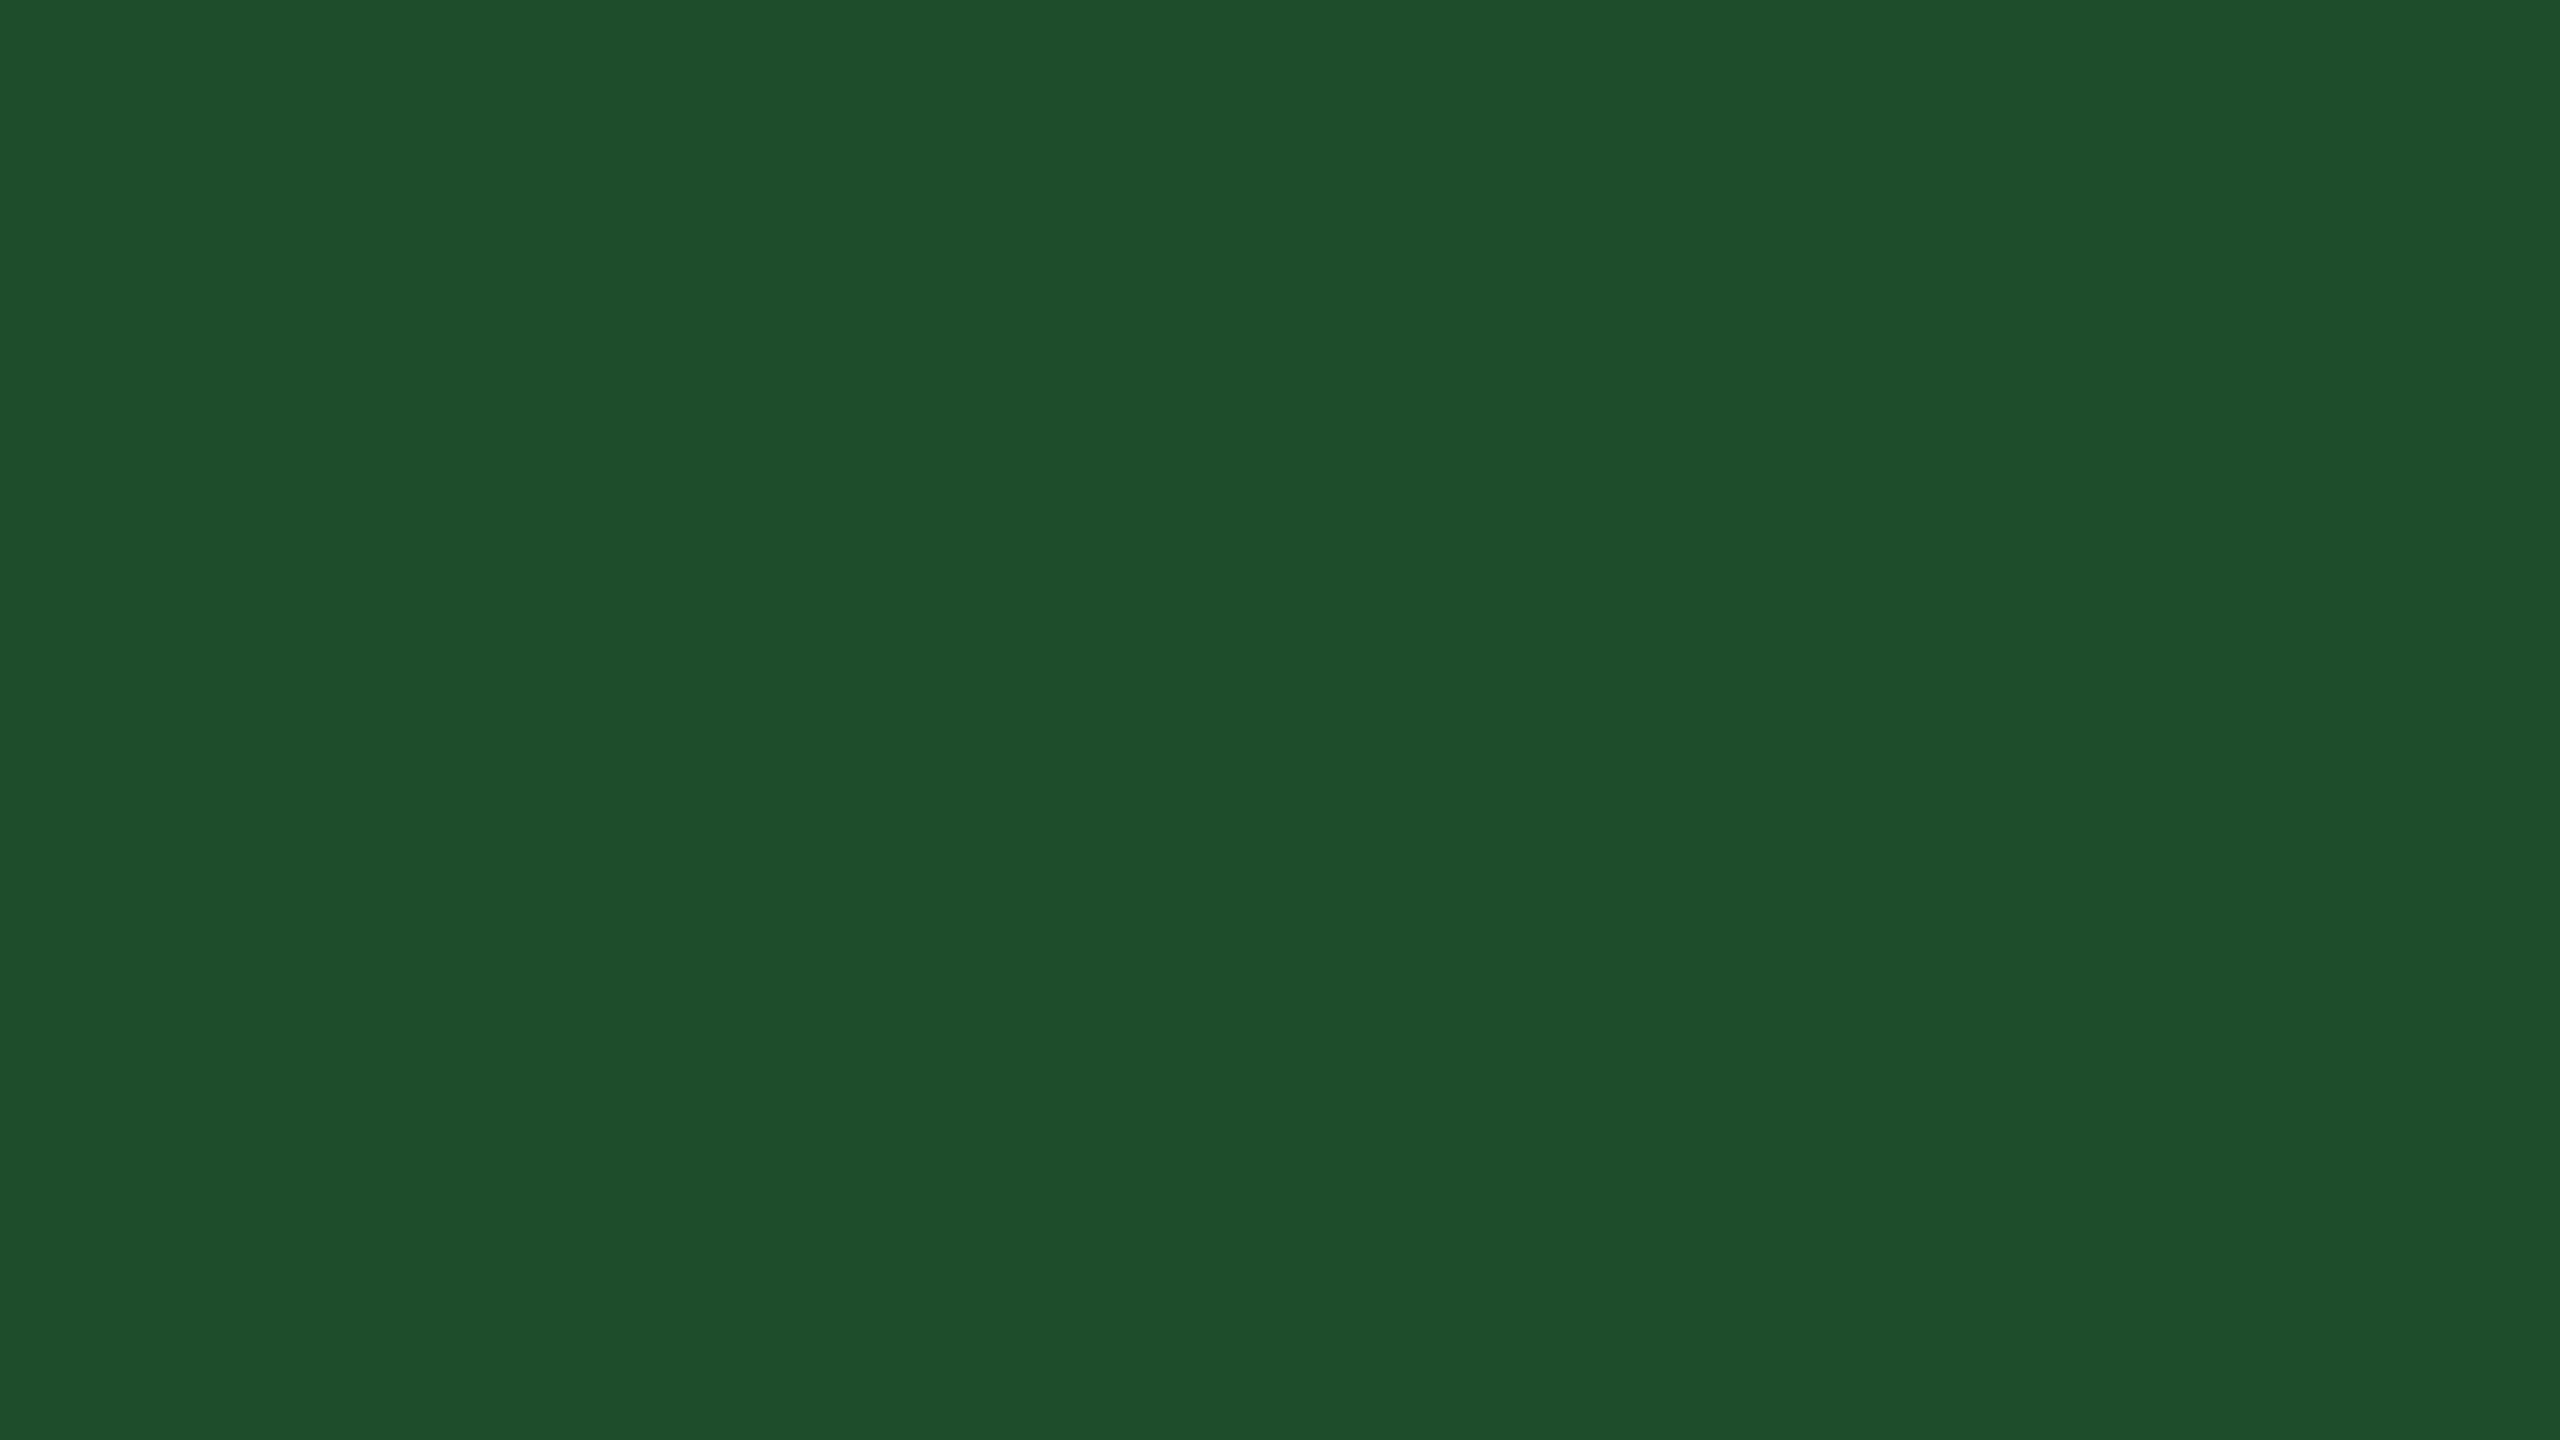 2560x1440 Cal Poly Green Solid Color Background 2560x1440